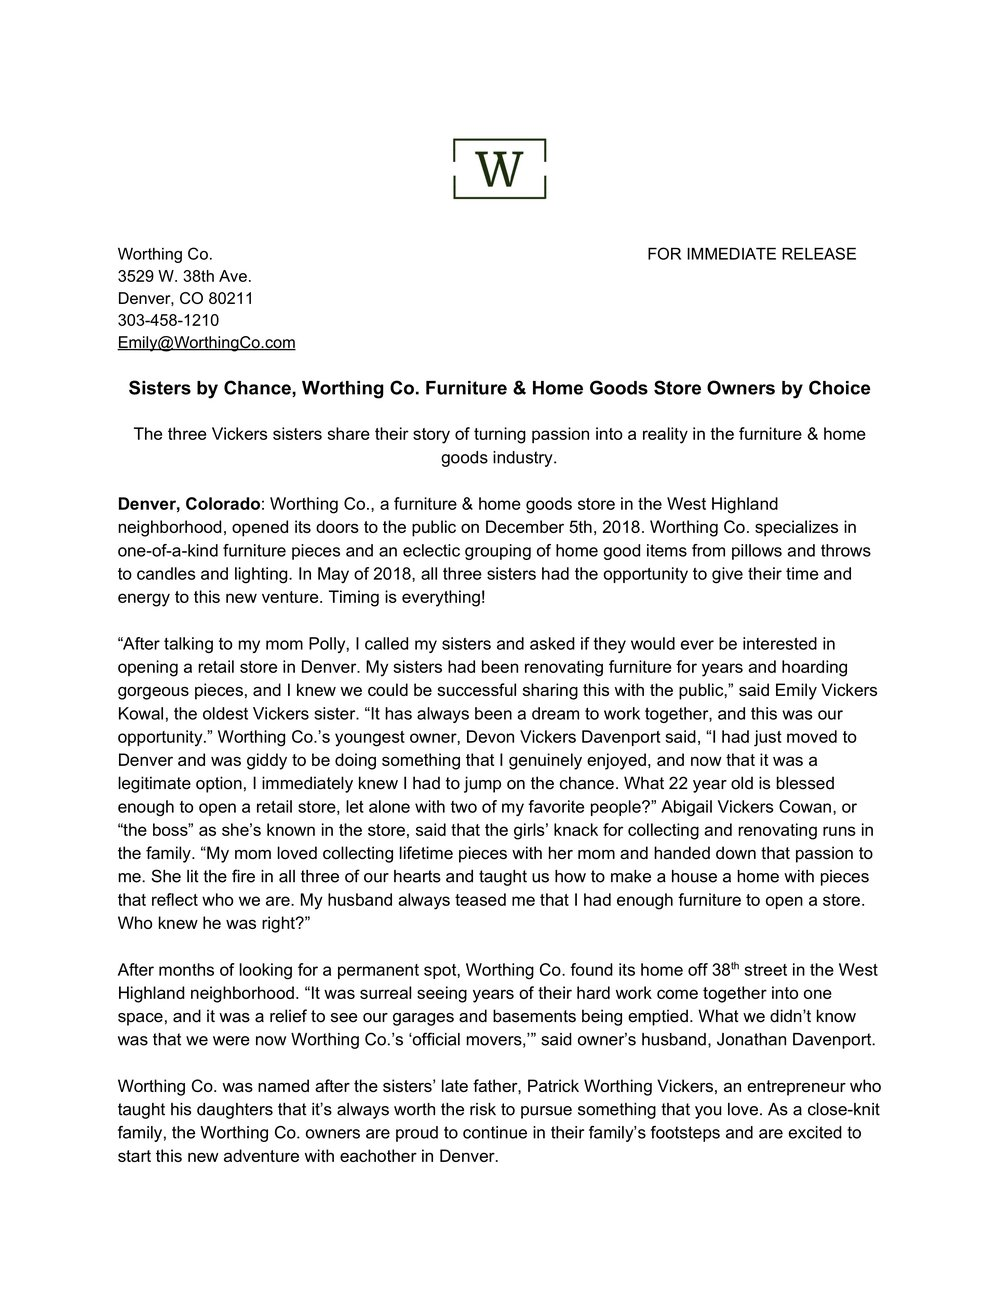 Worthing Co. Press Release.jpg